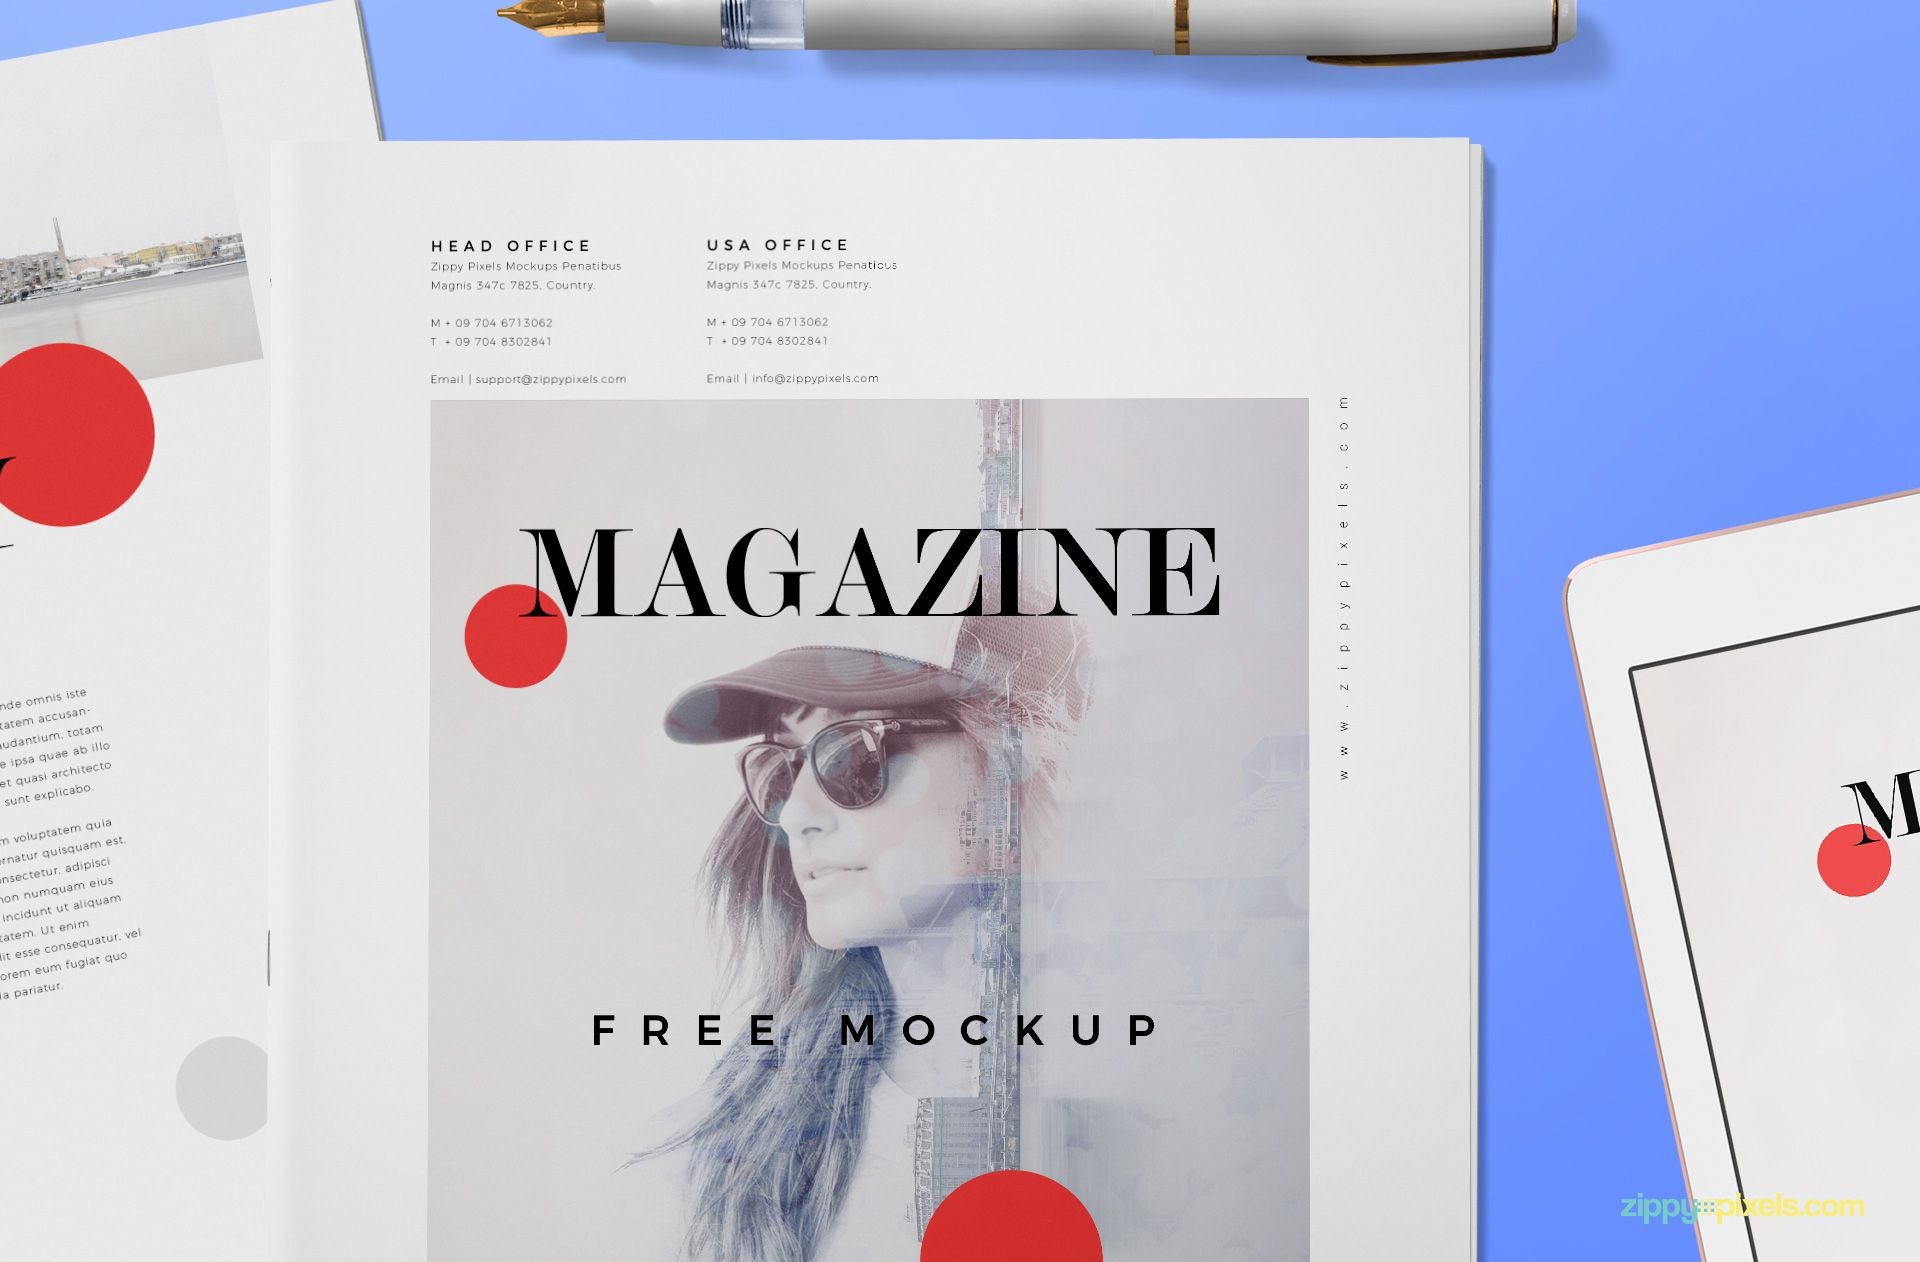 Zoom in view of magazine cover.